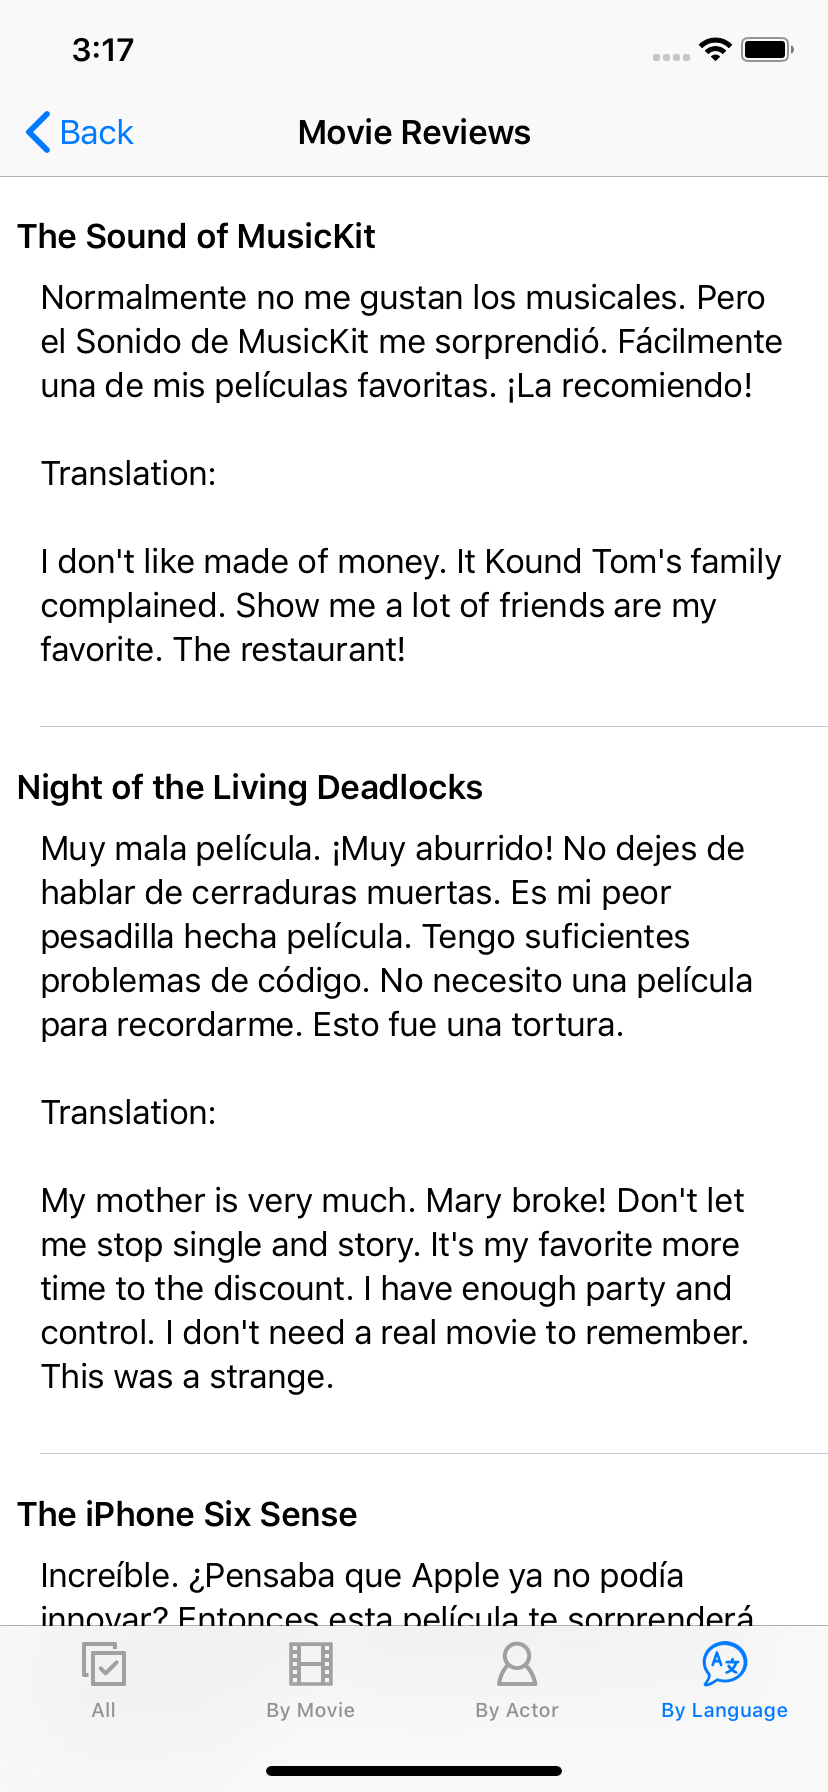 SMDB app with translated reviews